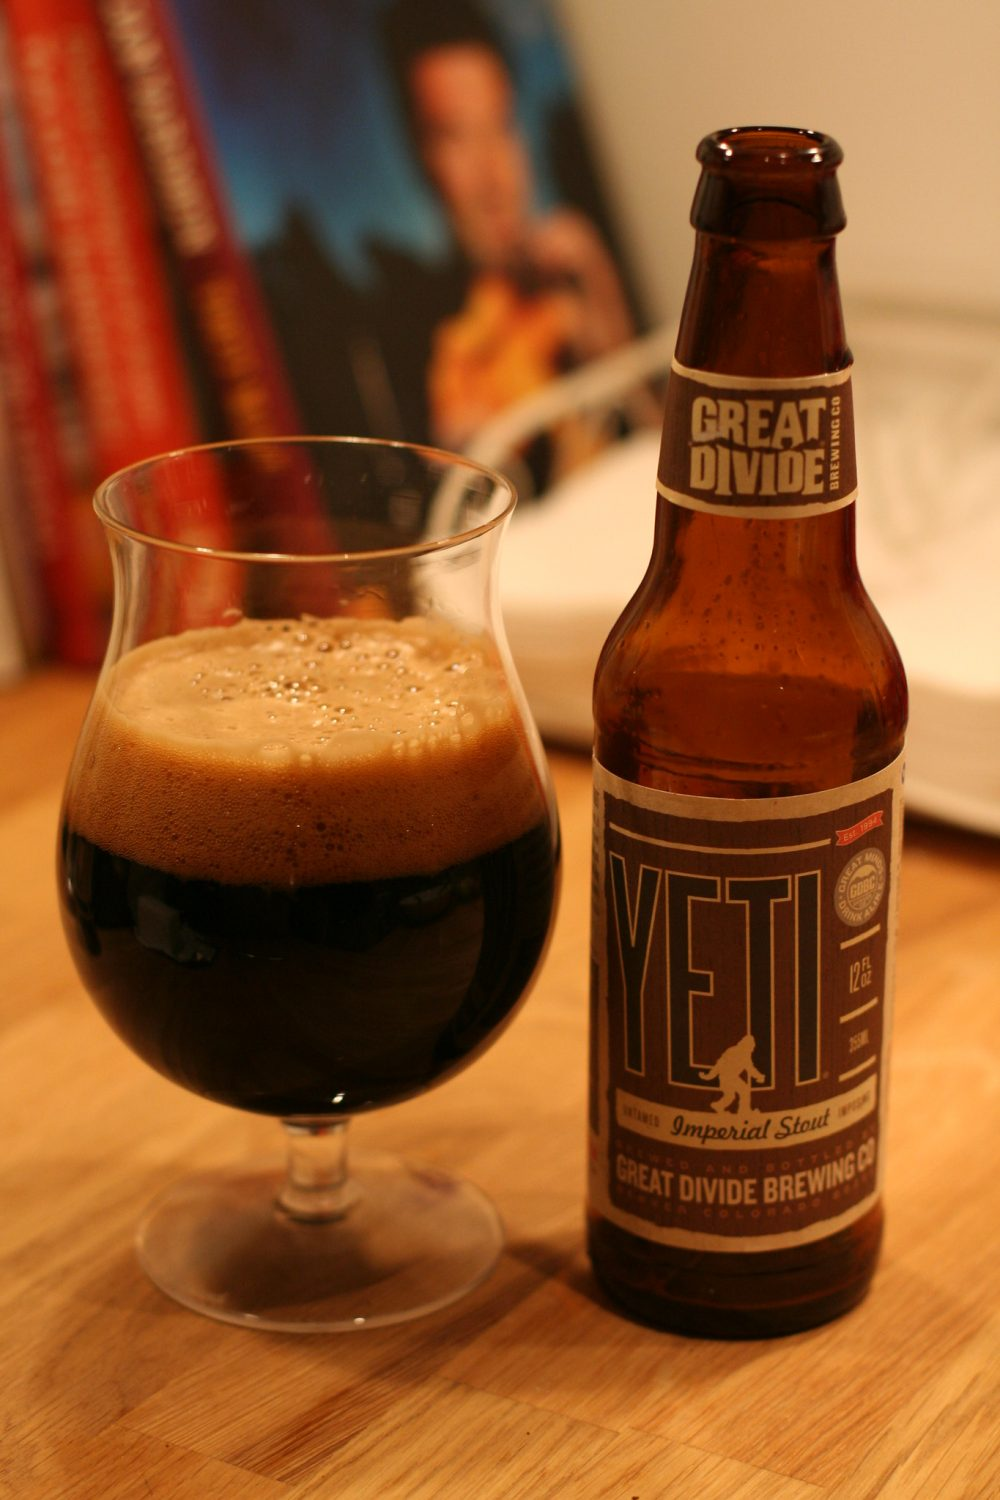 Great Divide's Yeti Imperial Stout